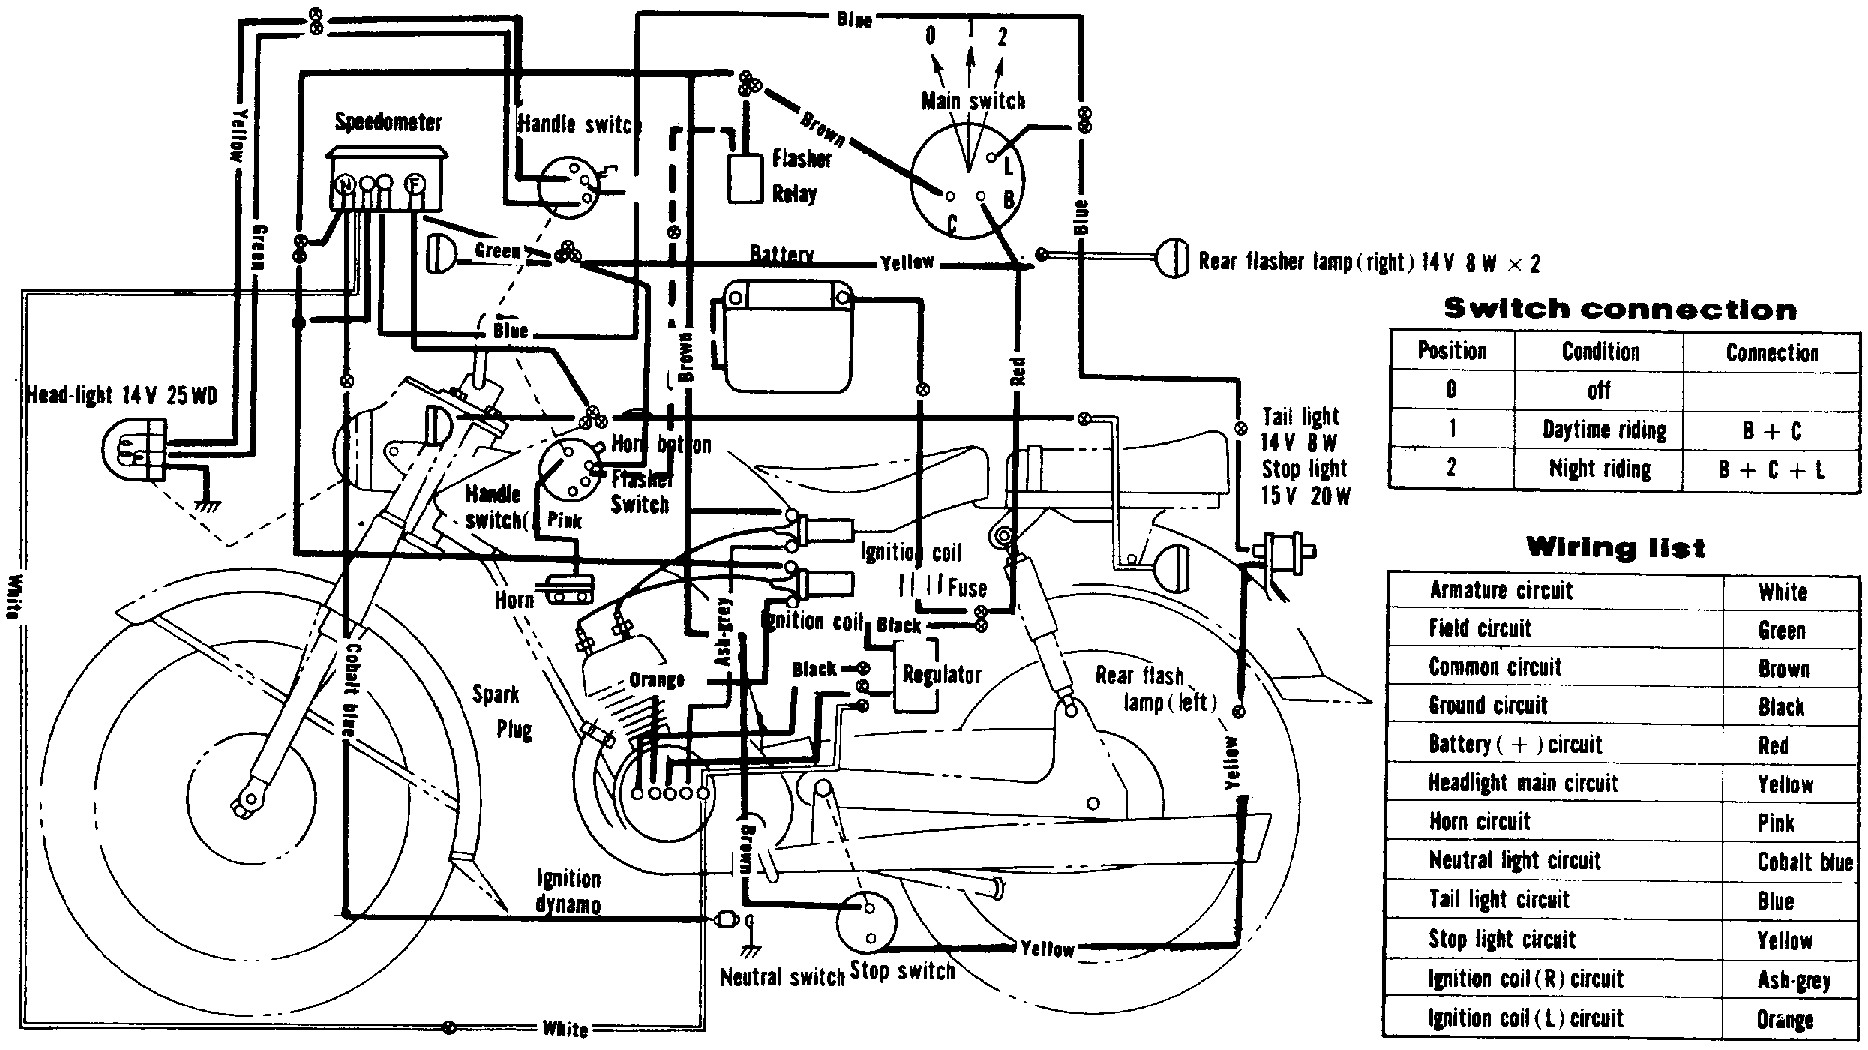 small resolution of yamaha l2 wiring diagram wiring diagrams for arctic cat wiring diagram yamaha l2 wiring diagram